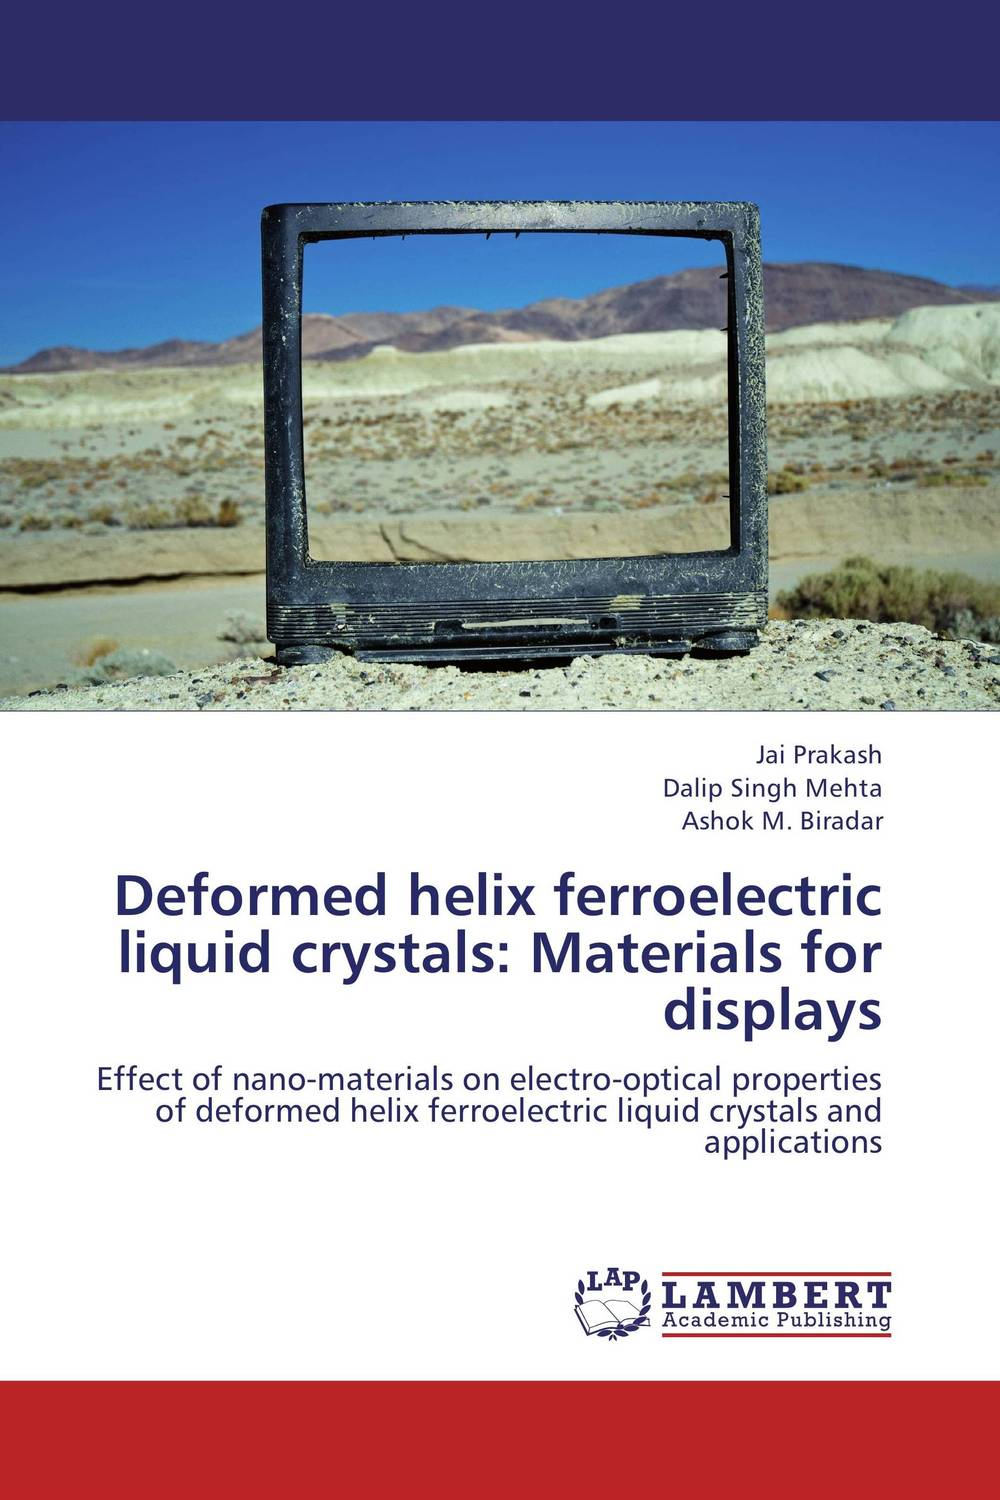 Deformed helix ferroelectric liquid crystals: Materials for displays o k belwal measures of information and their applications to various disciplines